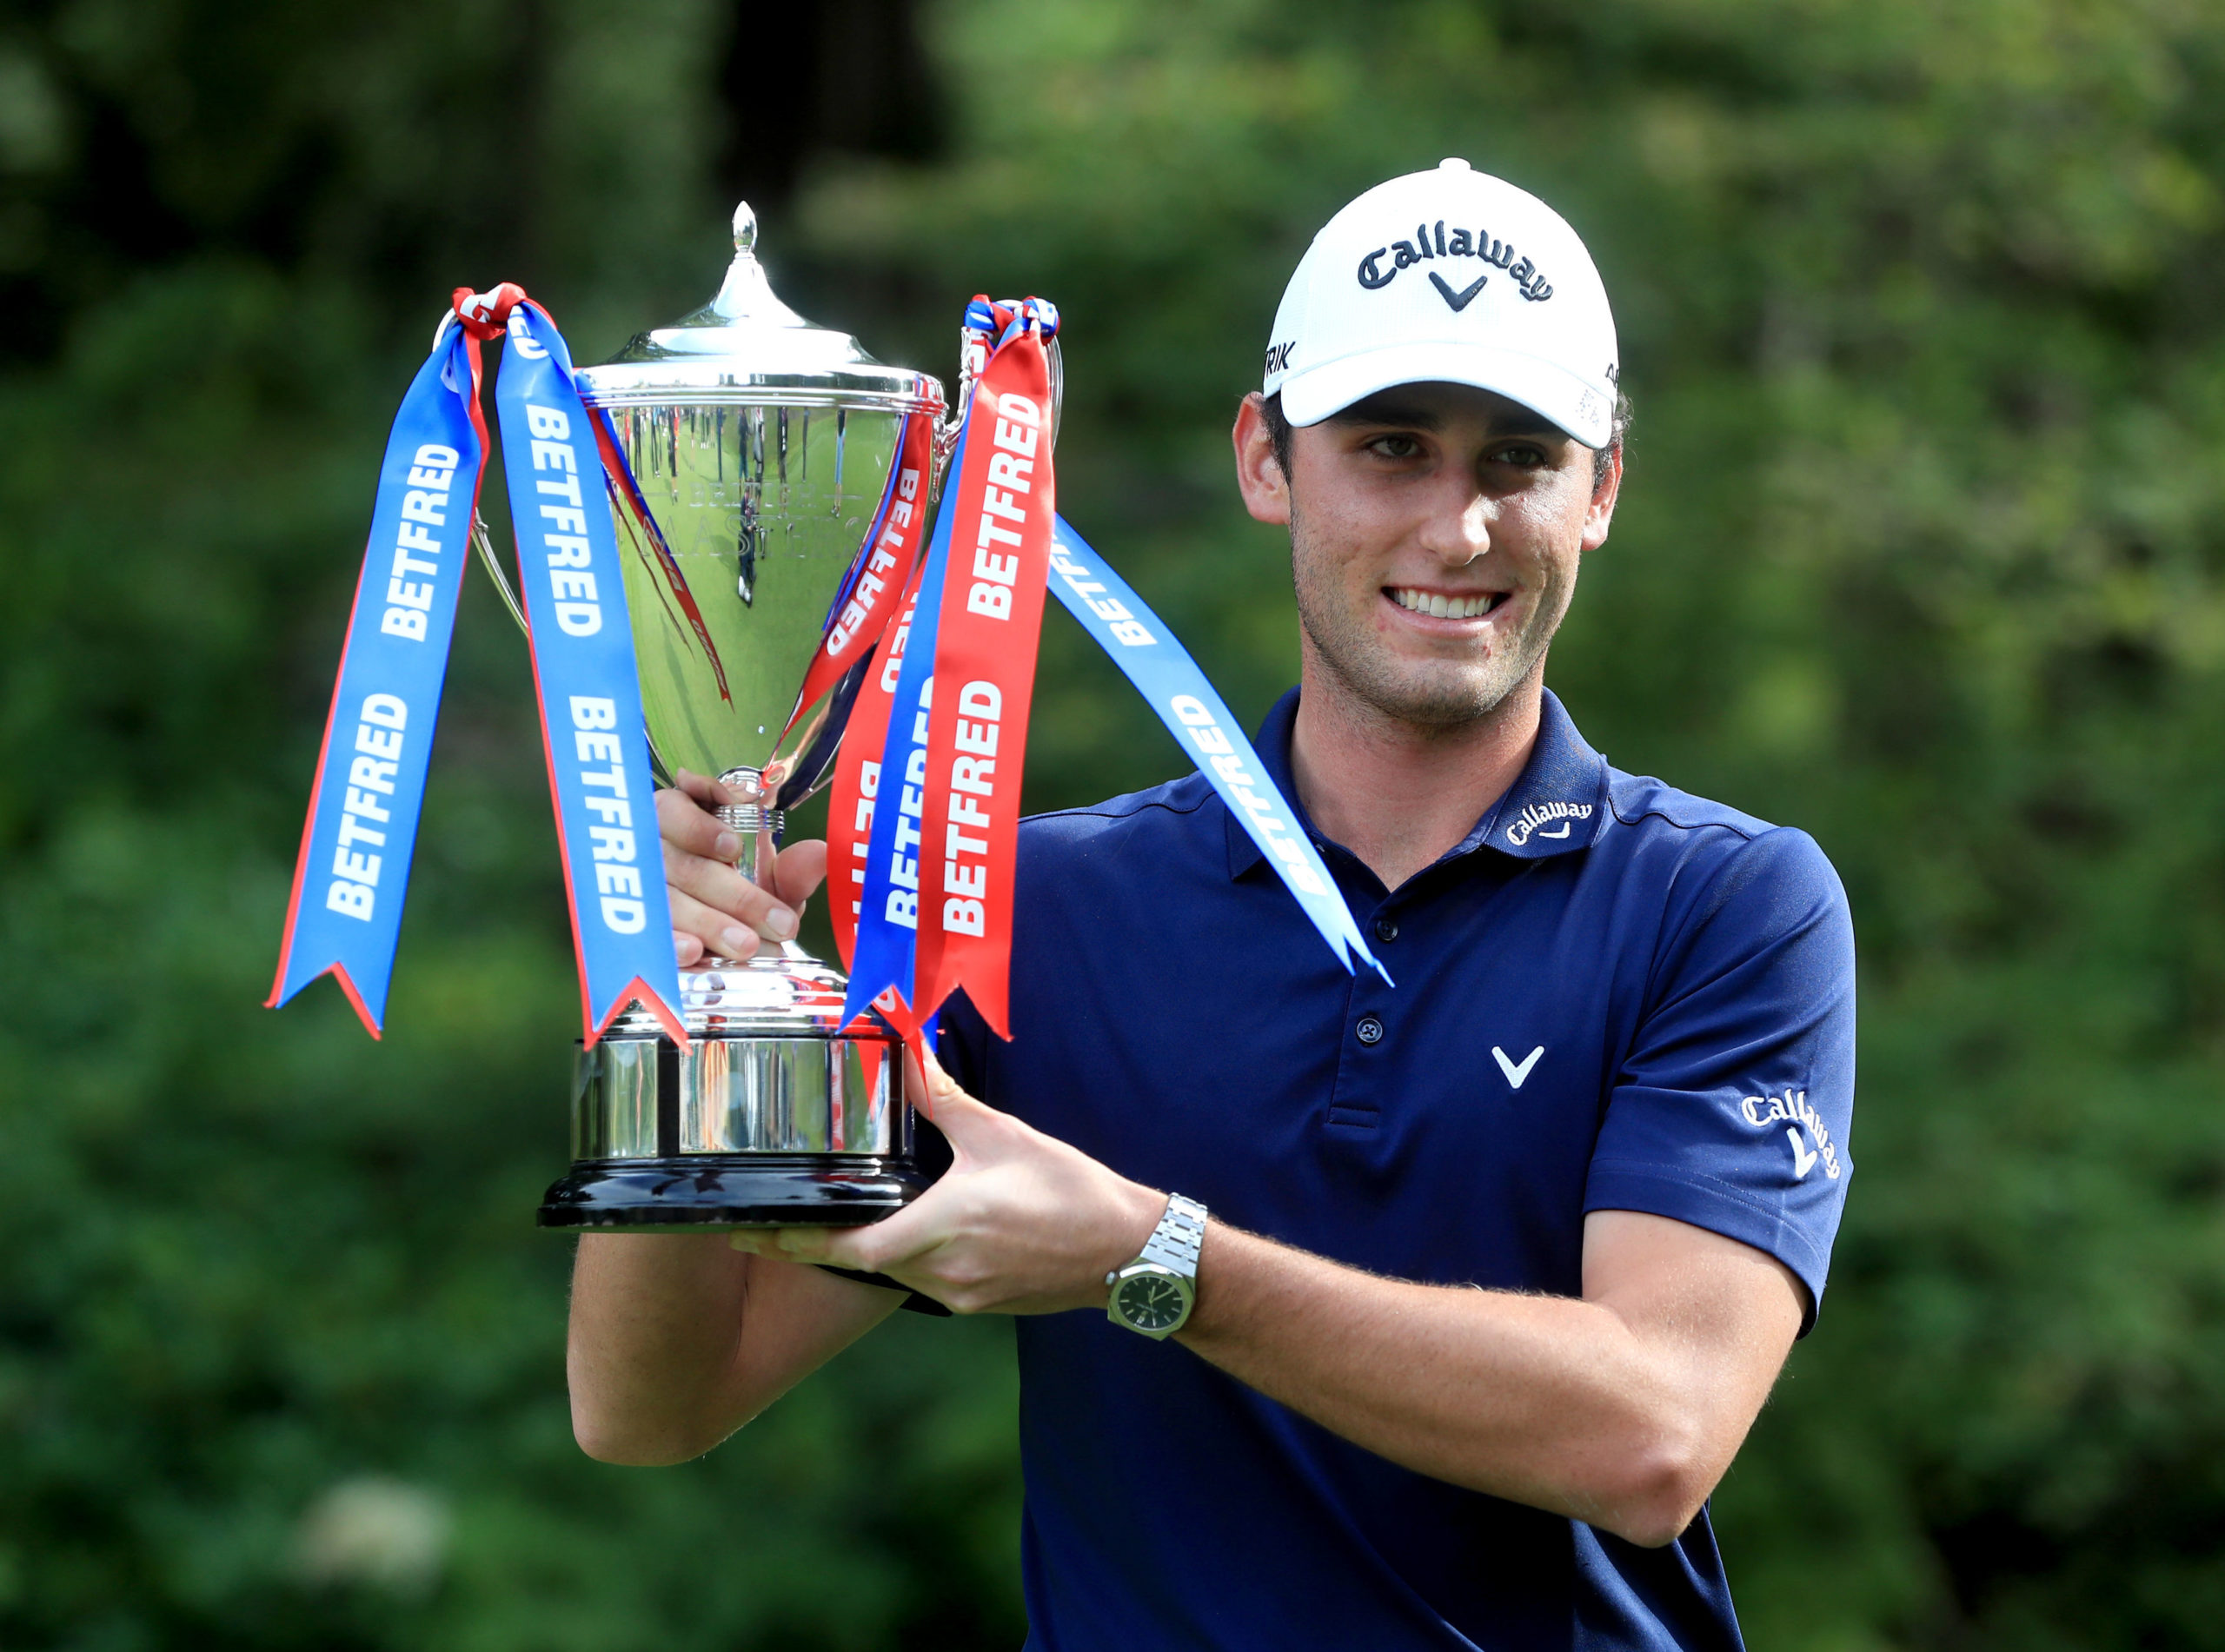 Italy's Renato Paratore with the trophy after his win Close House.